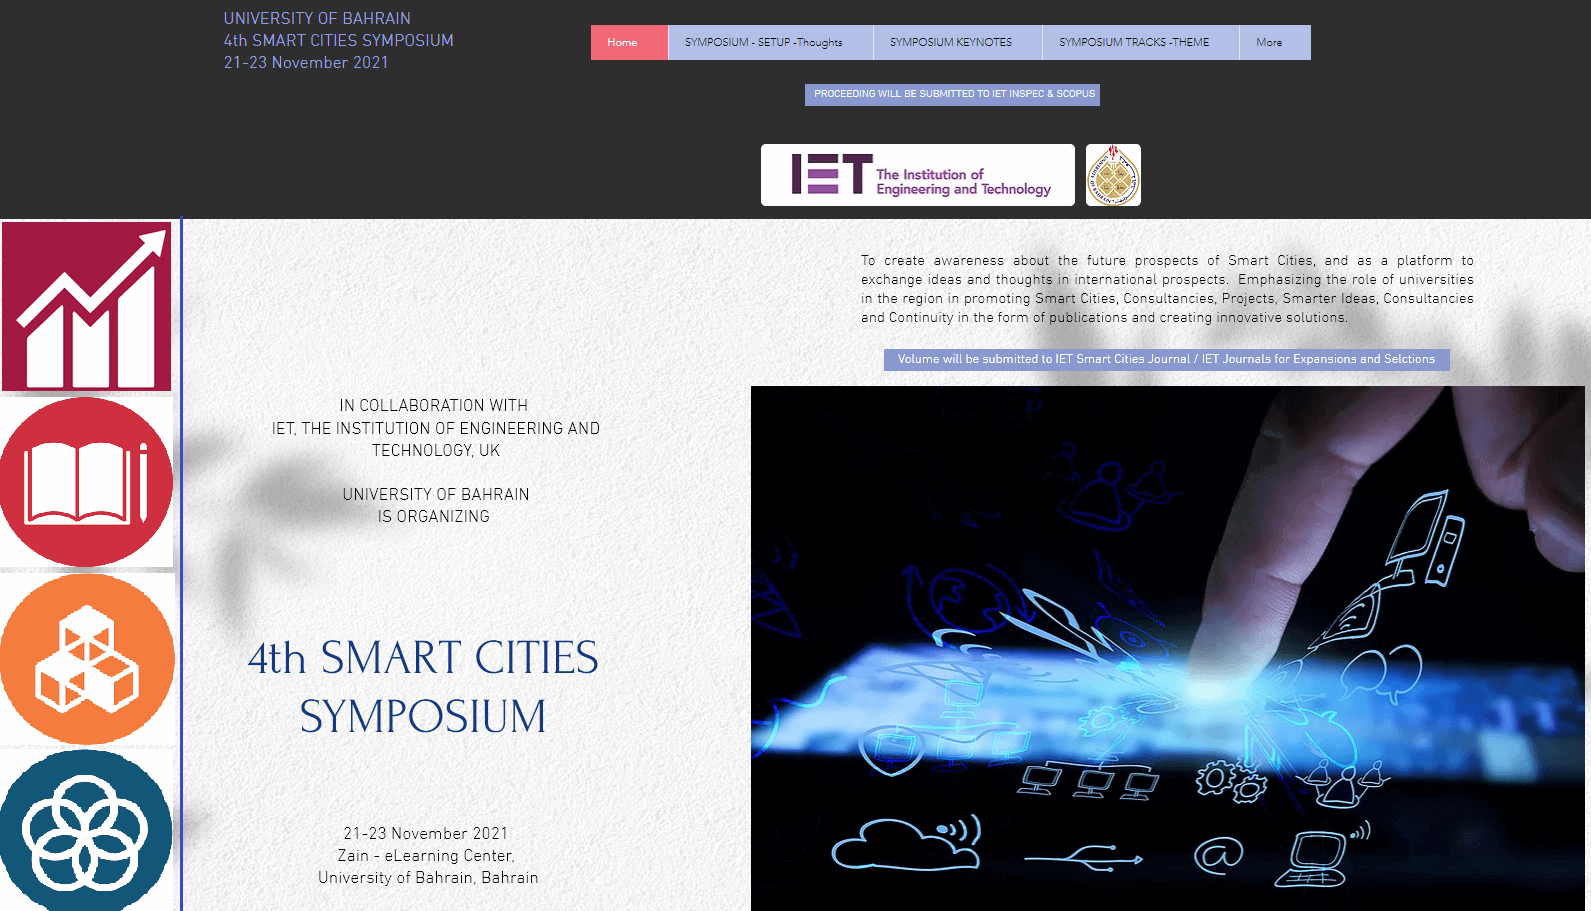 image for 4th Smart Cities Symposium